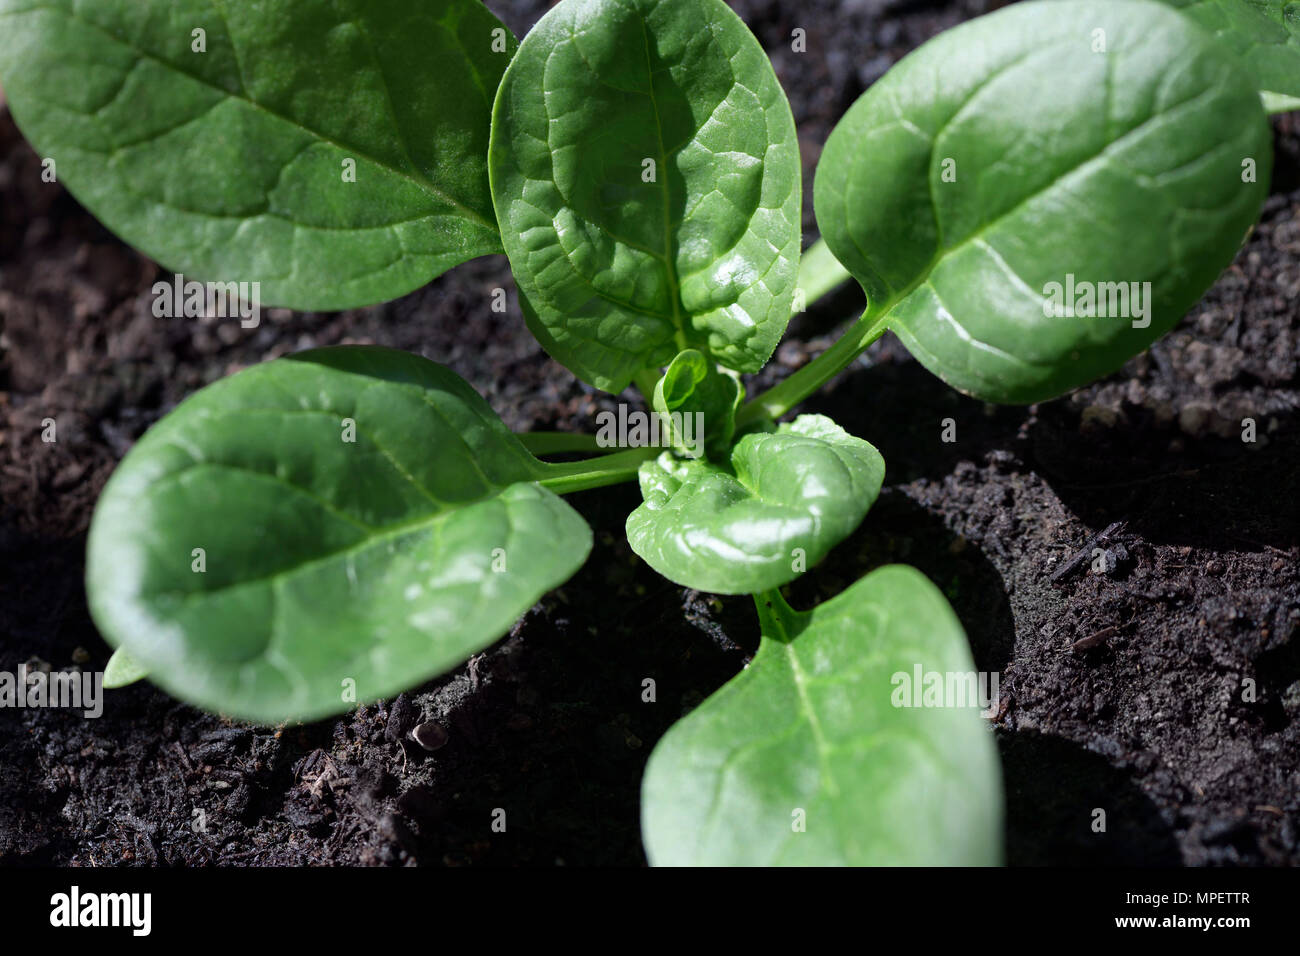 Closeup of a young organic spinach plant growing in natural soil Stock Photo